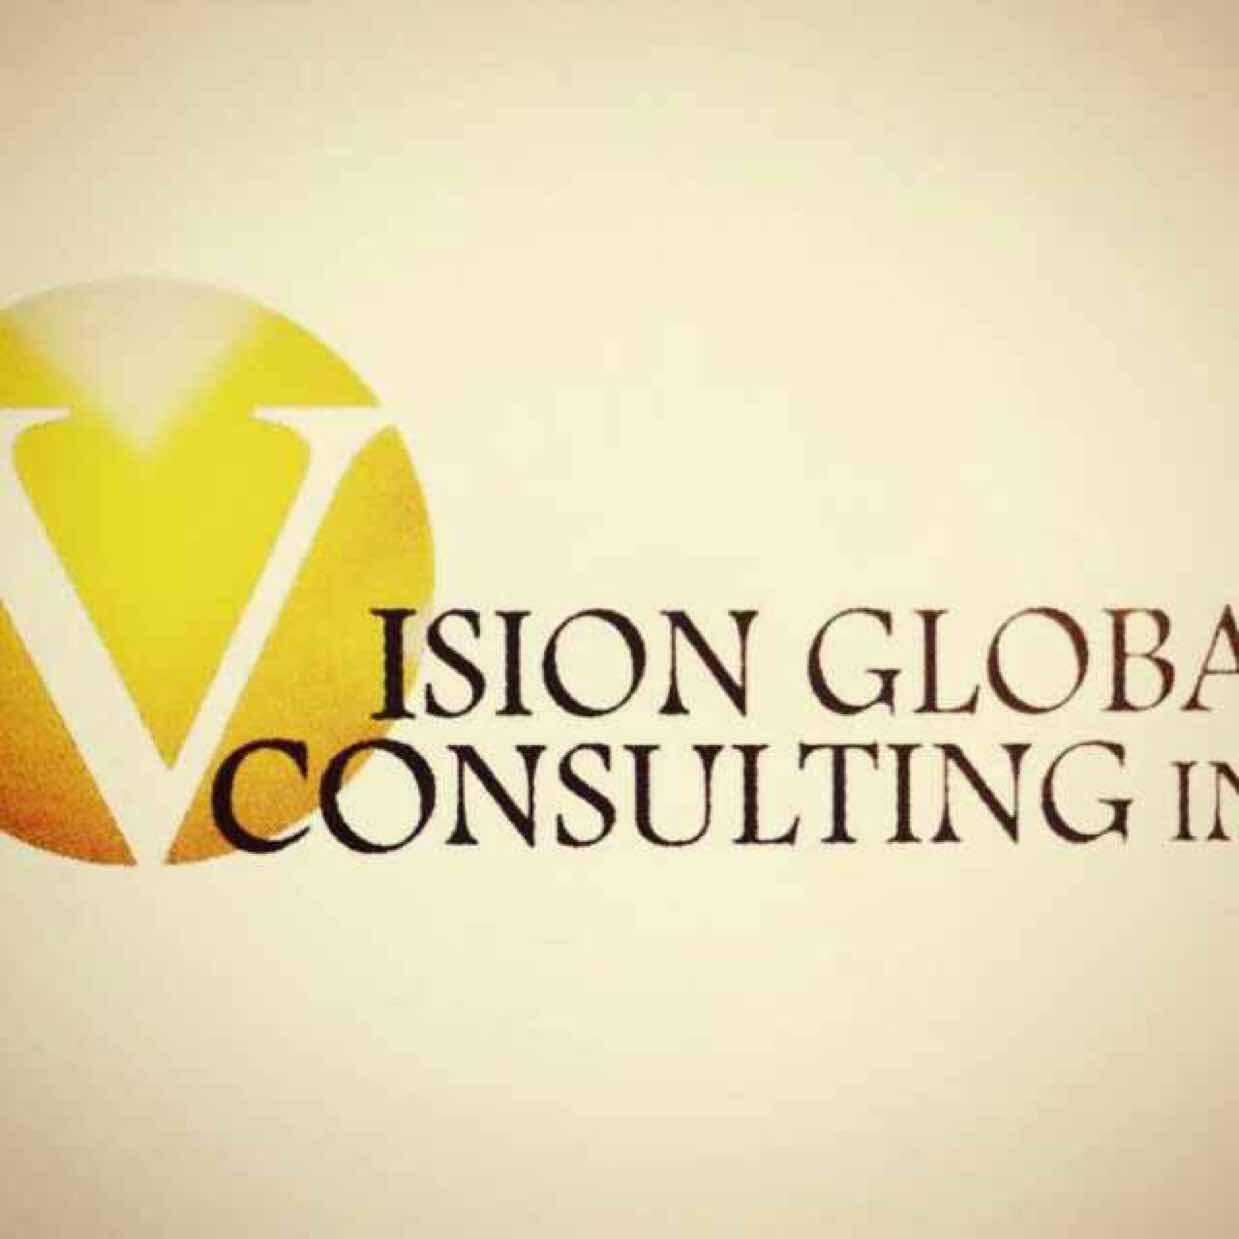 Vision Global Consulting